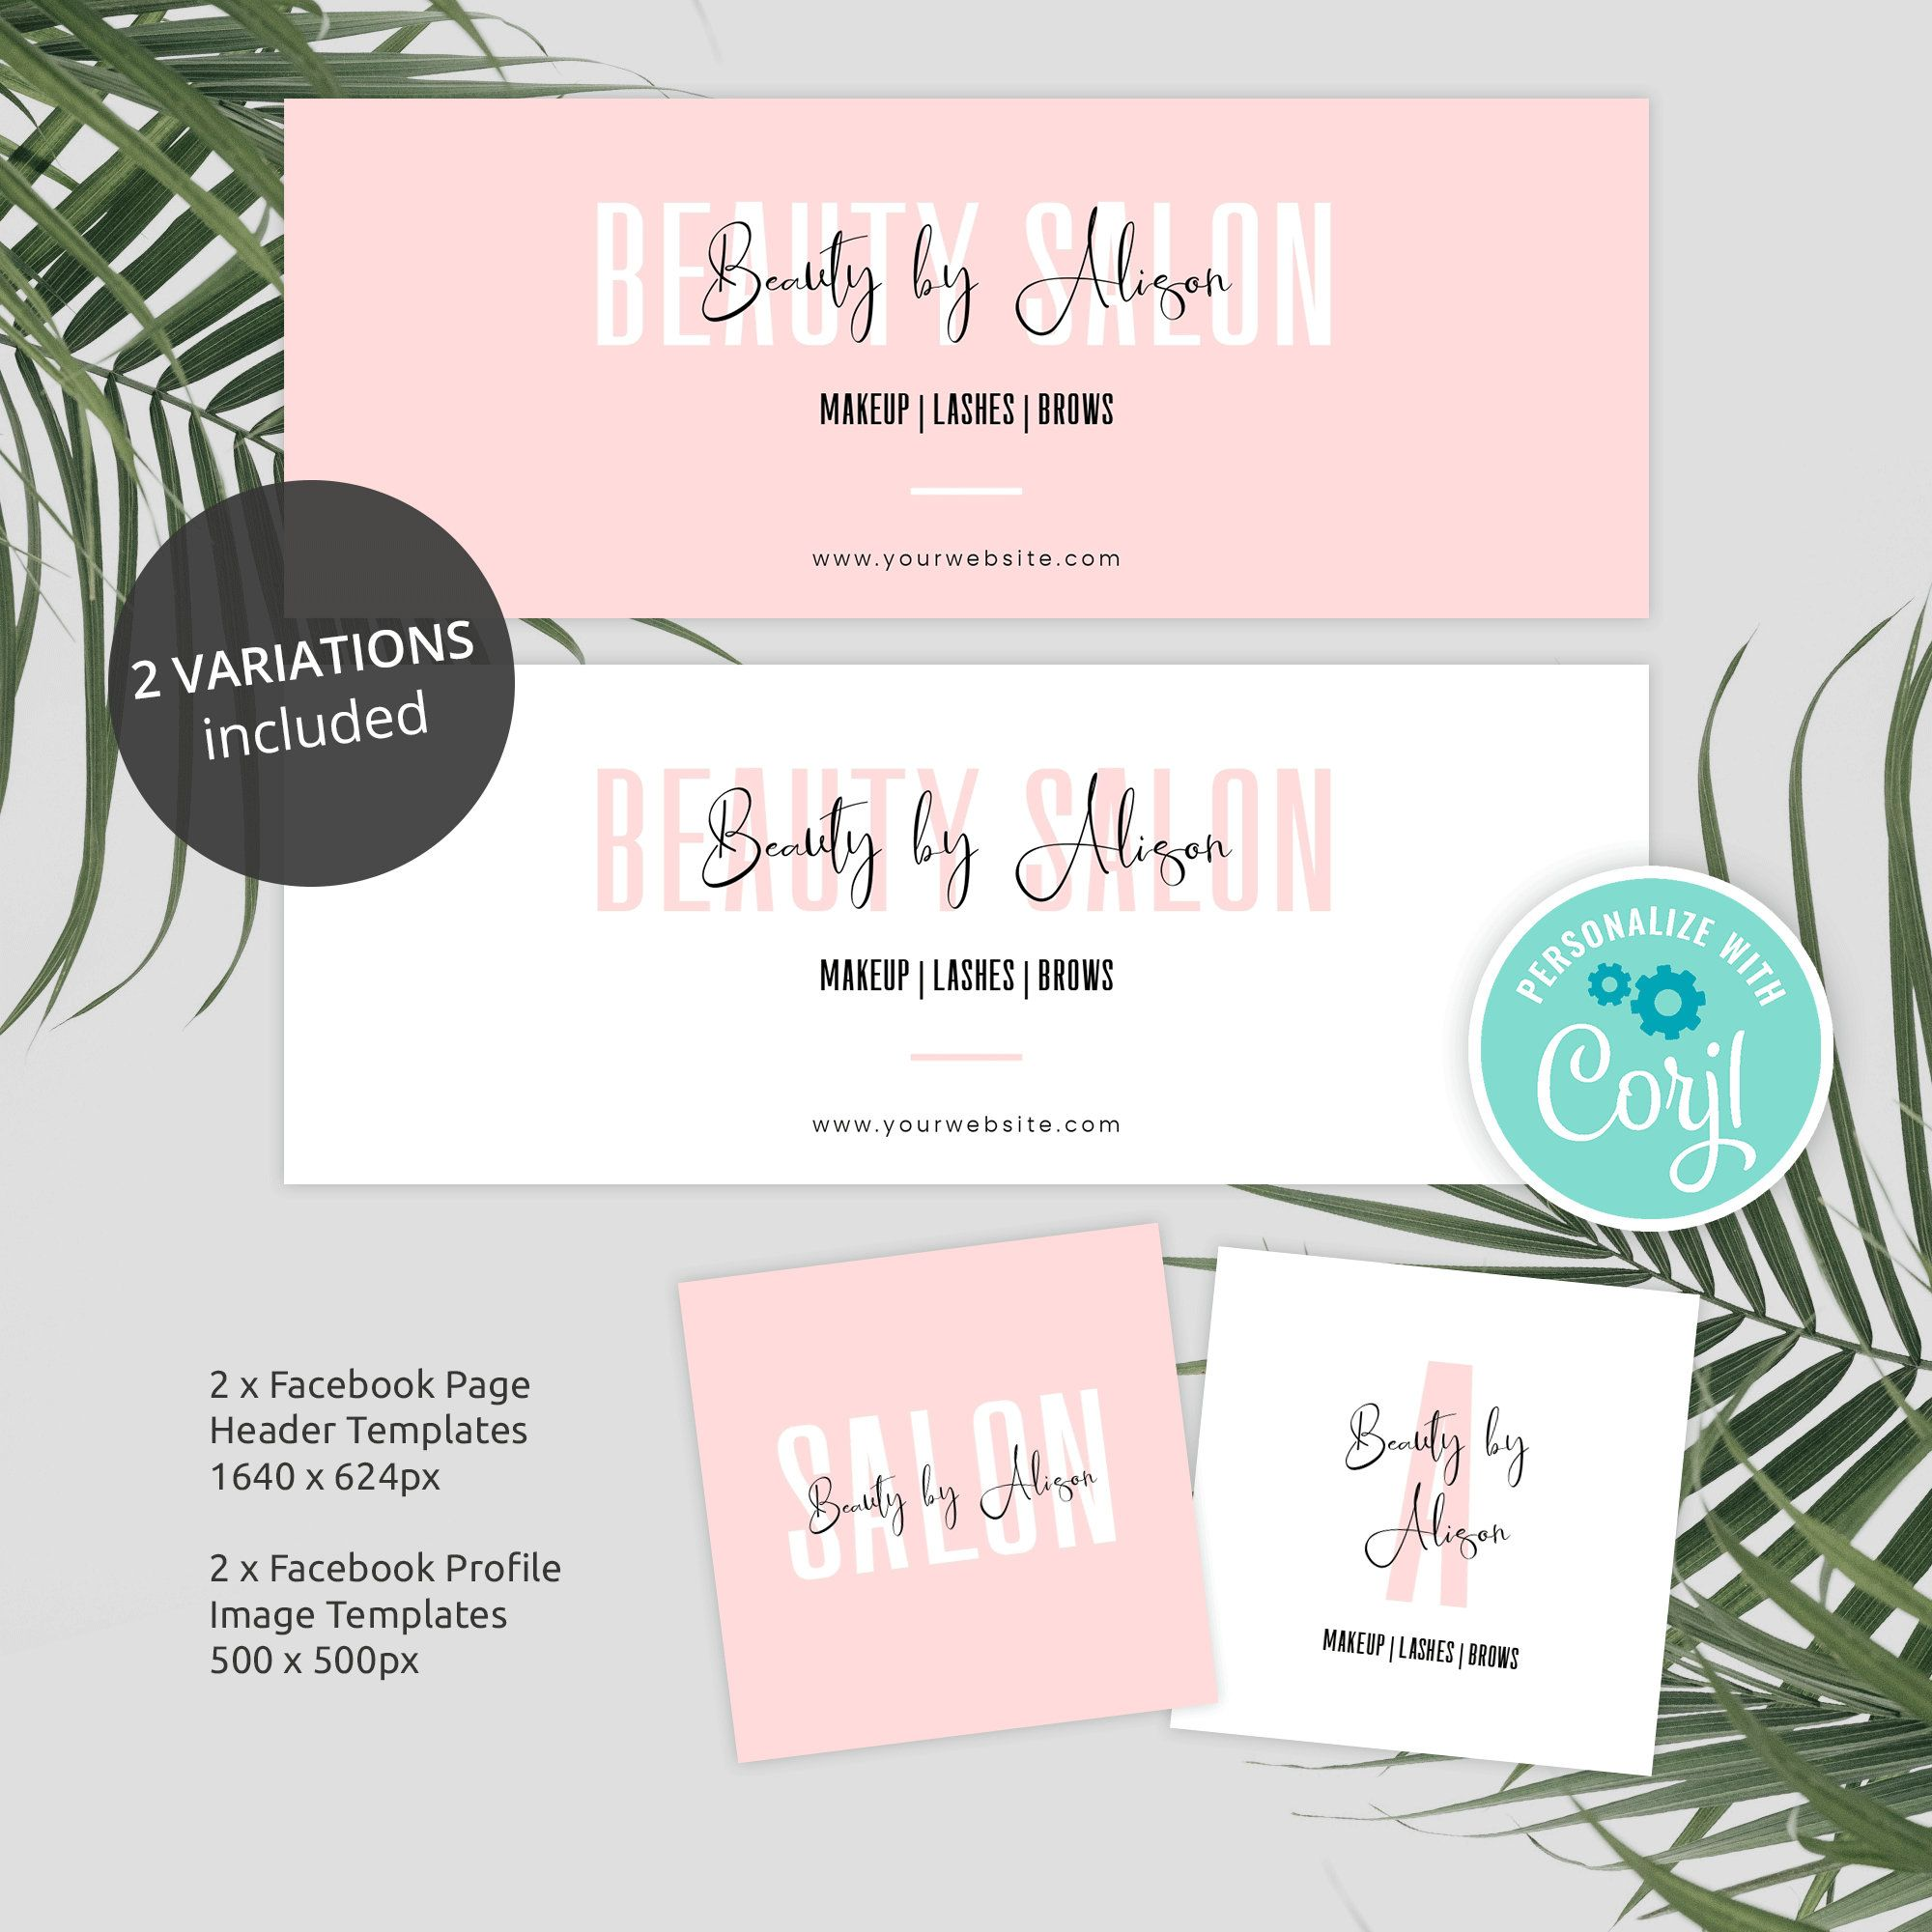 Editable Facebook Banners Facebook Page Cover Template Diy Etsy Facebook Cover Template Cover Template Branding Template